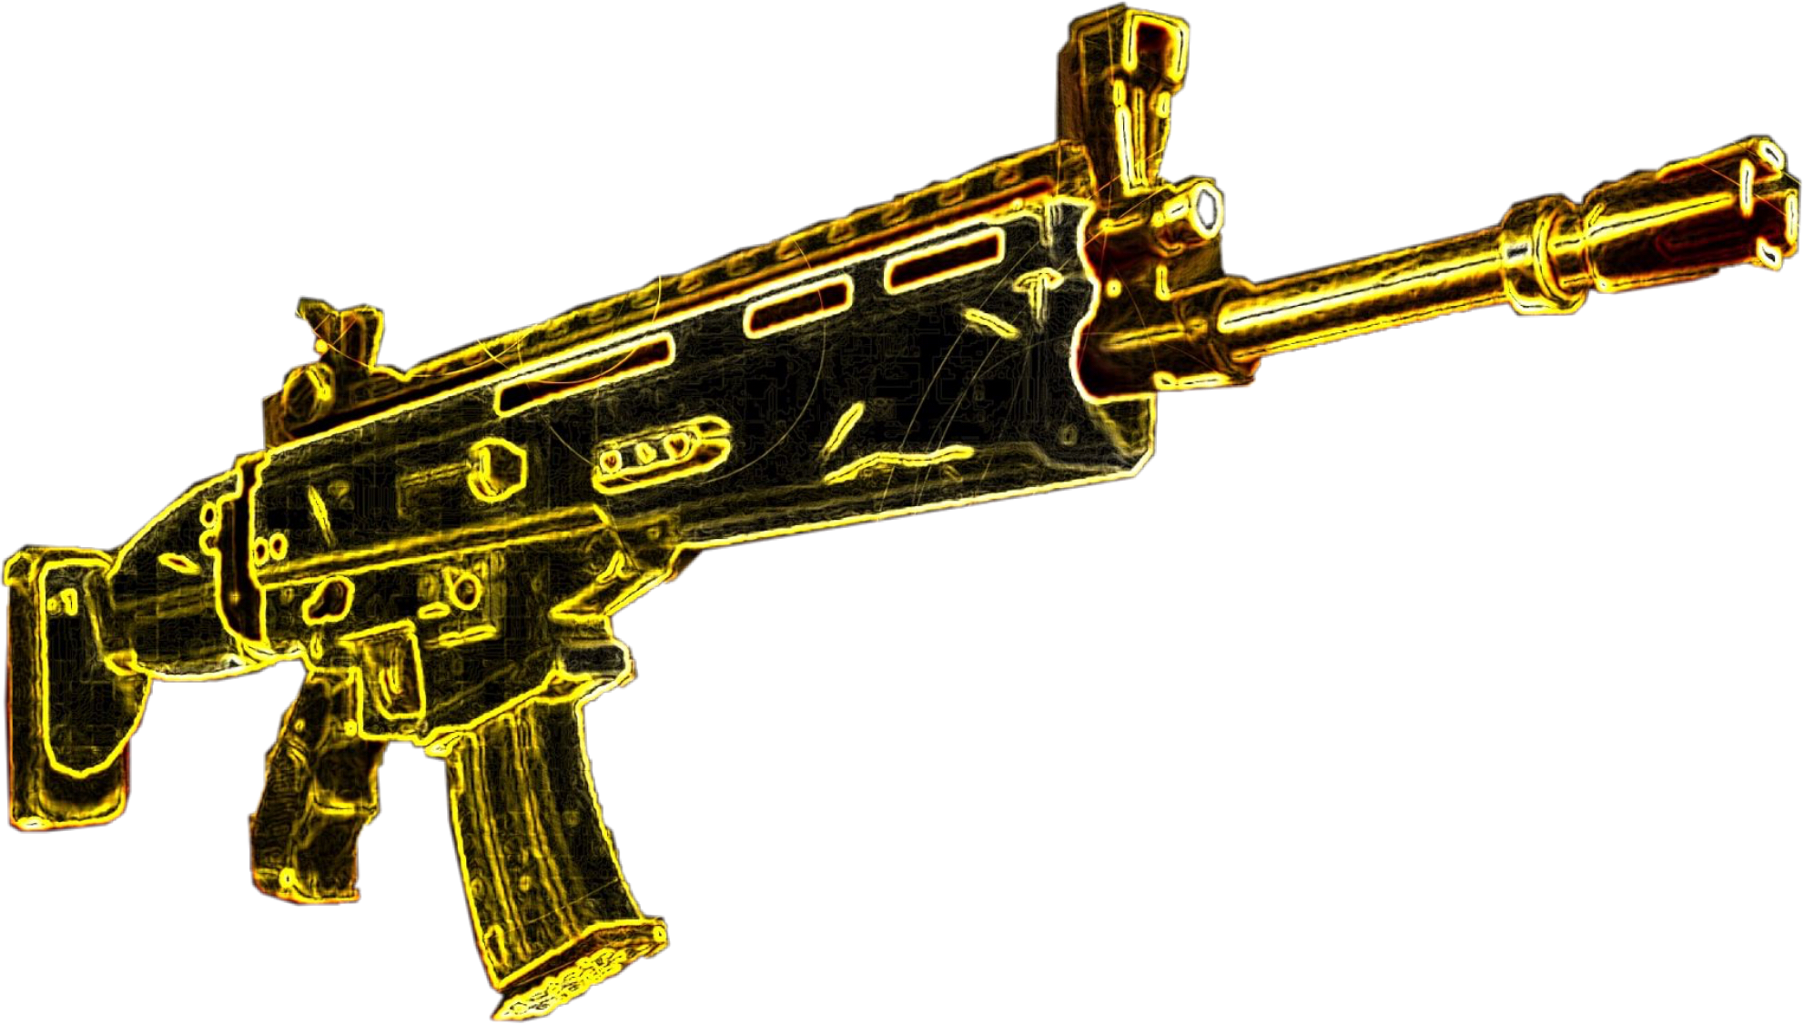 Fortnitebattleroyale top scar freetoedit. Clipart gun fortnite